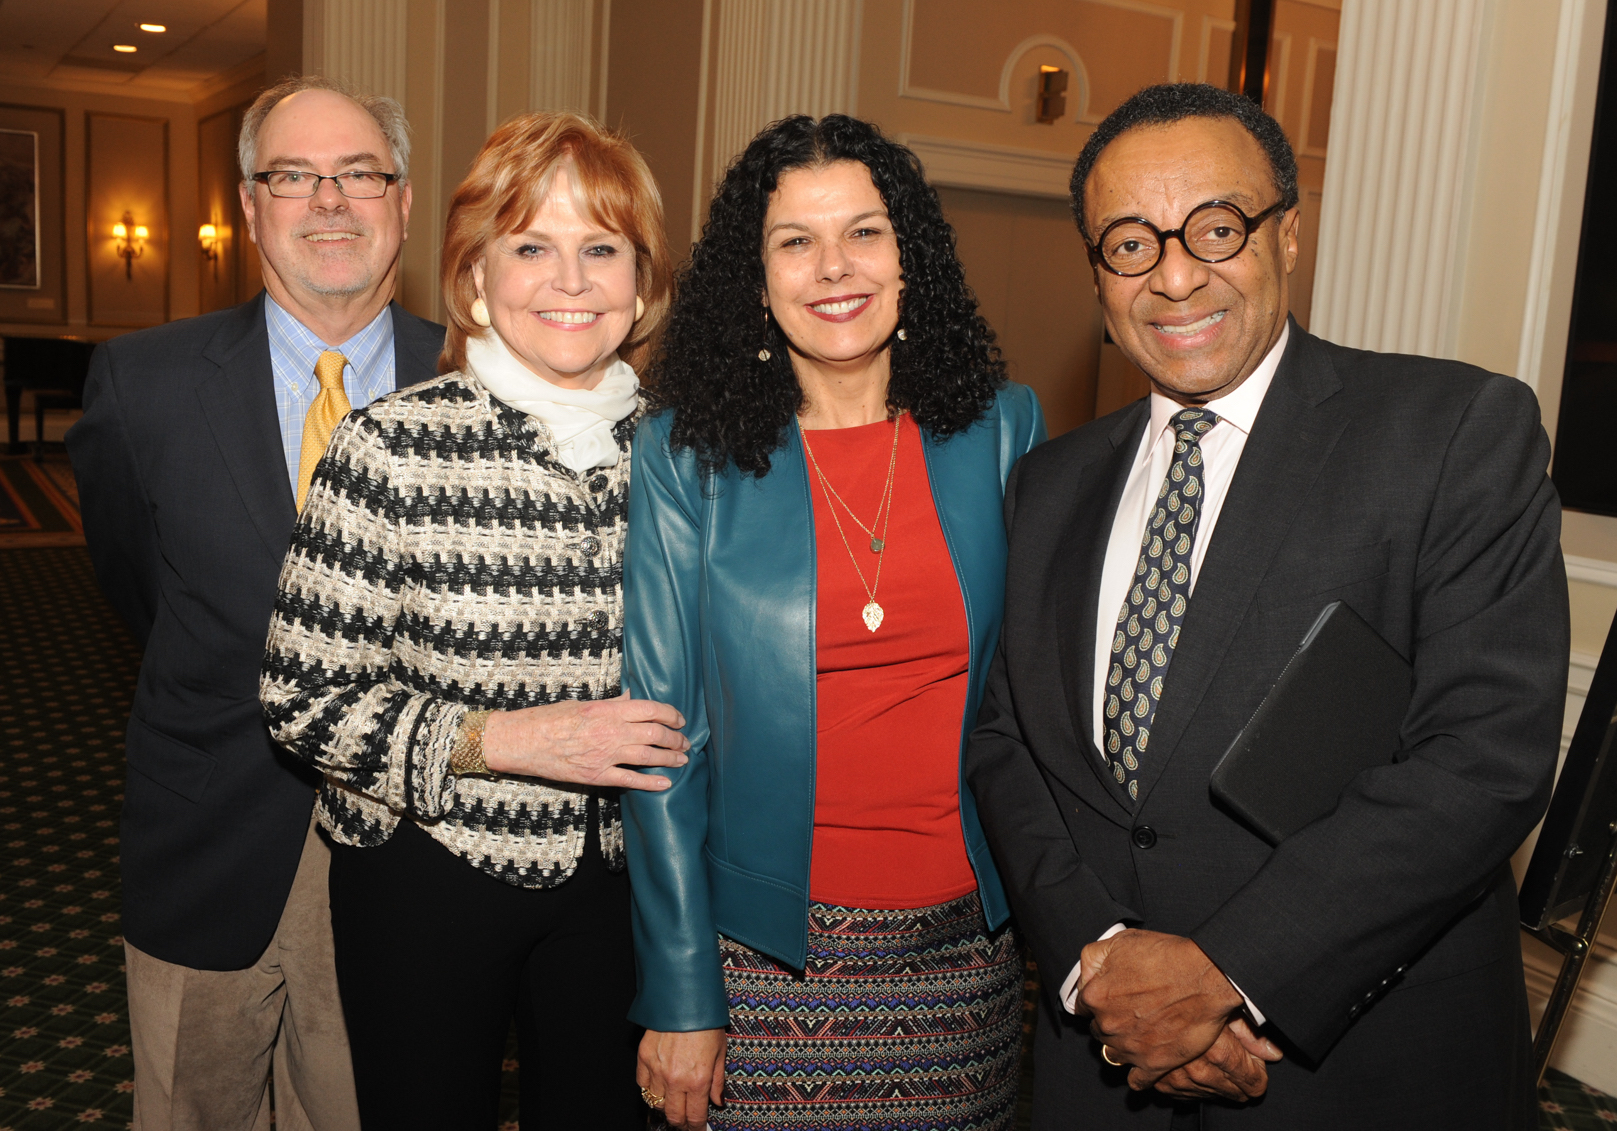 ​(from L to R) Center for Journalism Co-Directors Don Moseley and Carol Marin, College of Communication Dean Salma Ghanem, and Clarence Page. (Photo by Paul Berg.)